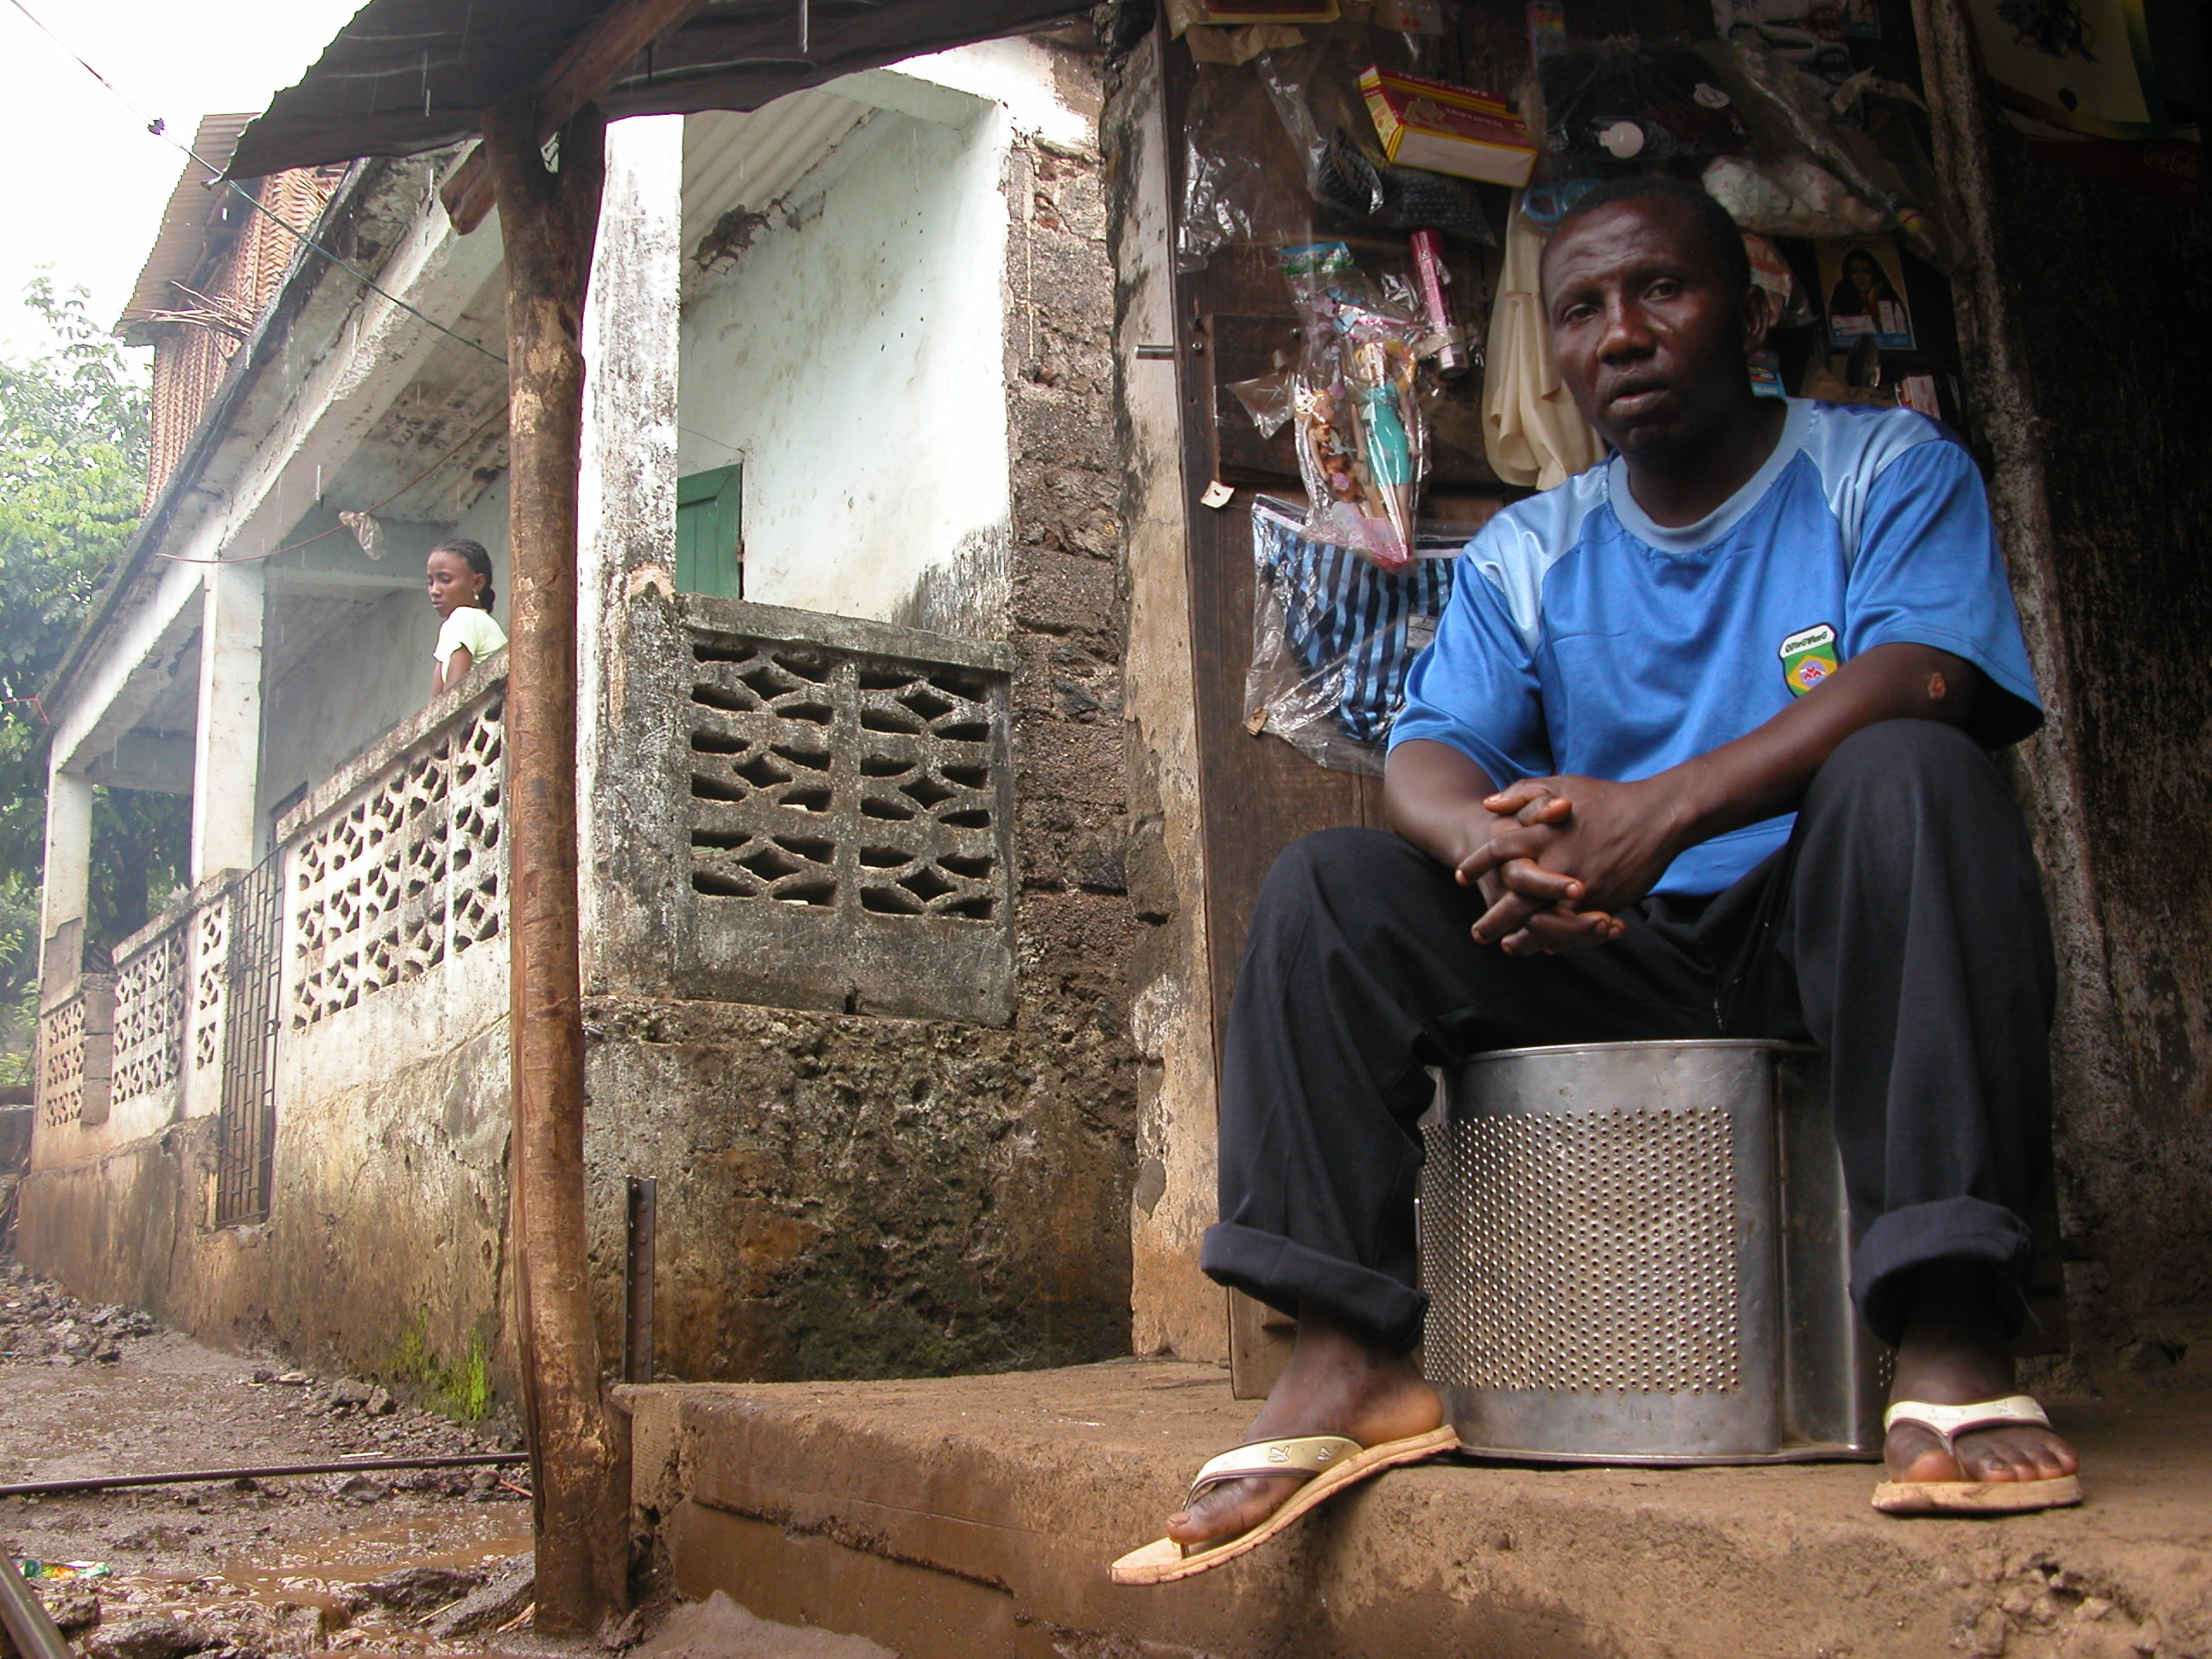 Laidine Abdullah sits outside his small shop in Barakani, a village in Anjouan